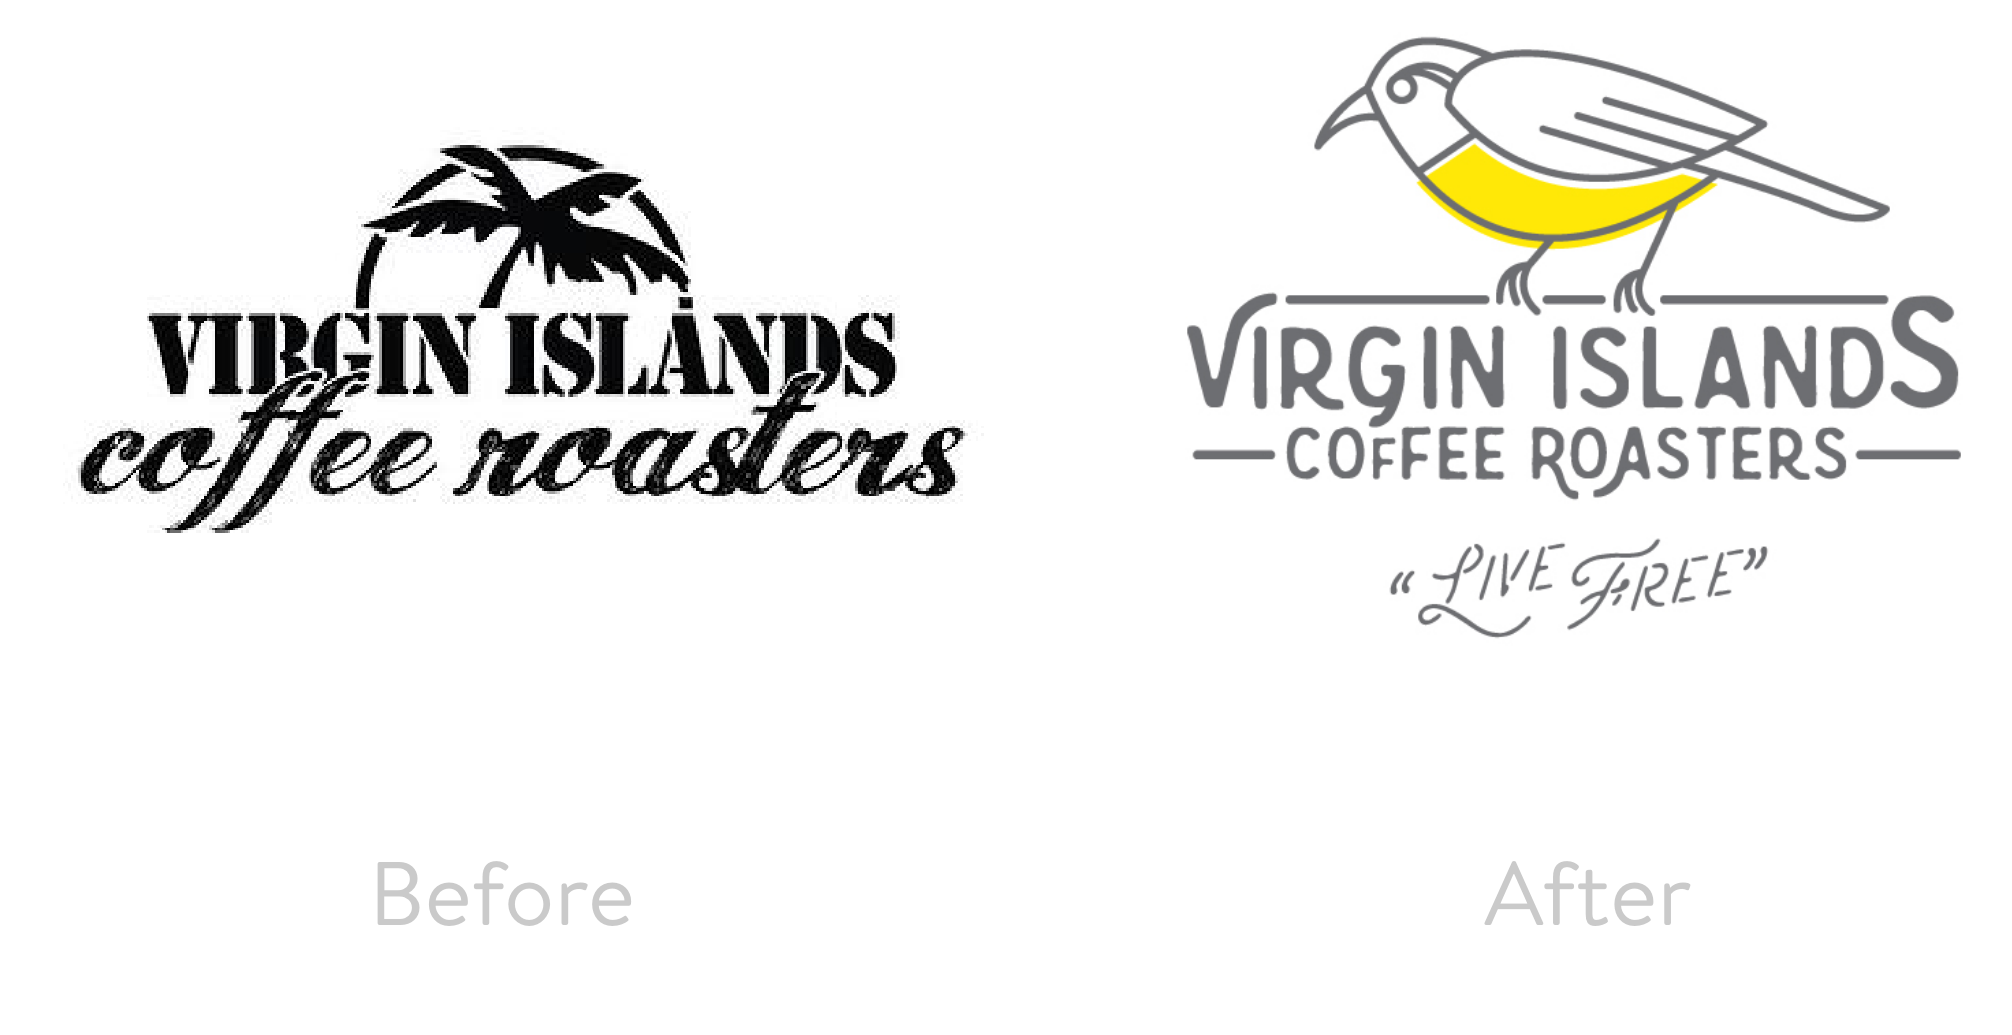 Virgin Islands Coffee Roasters Before and After Logos